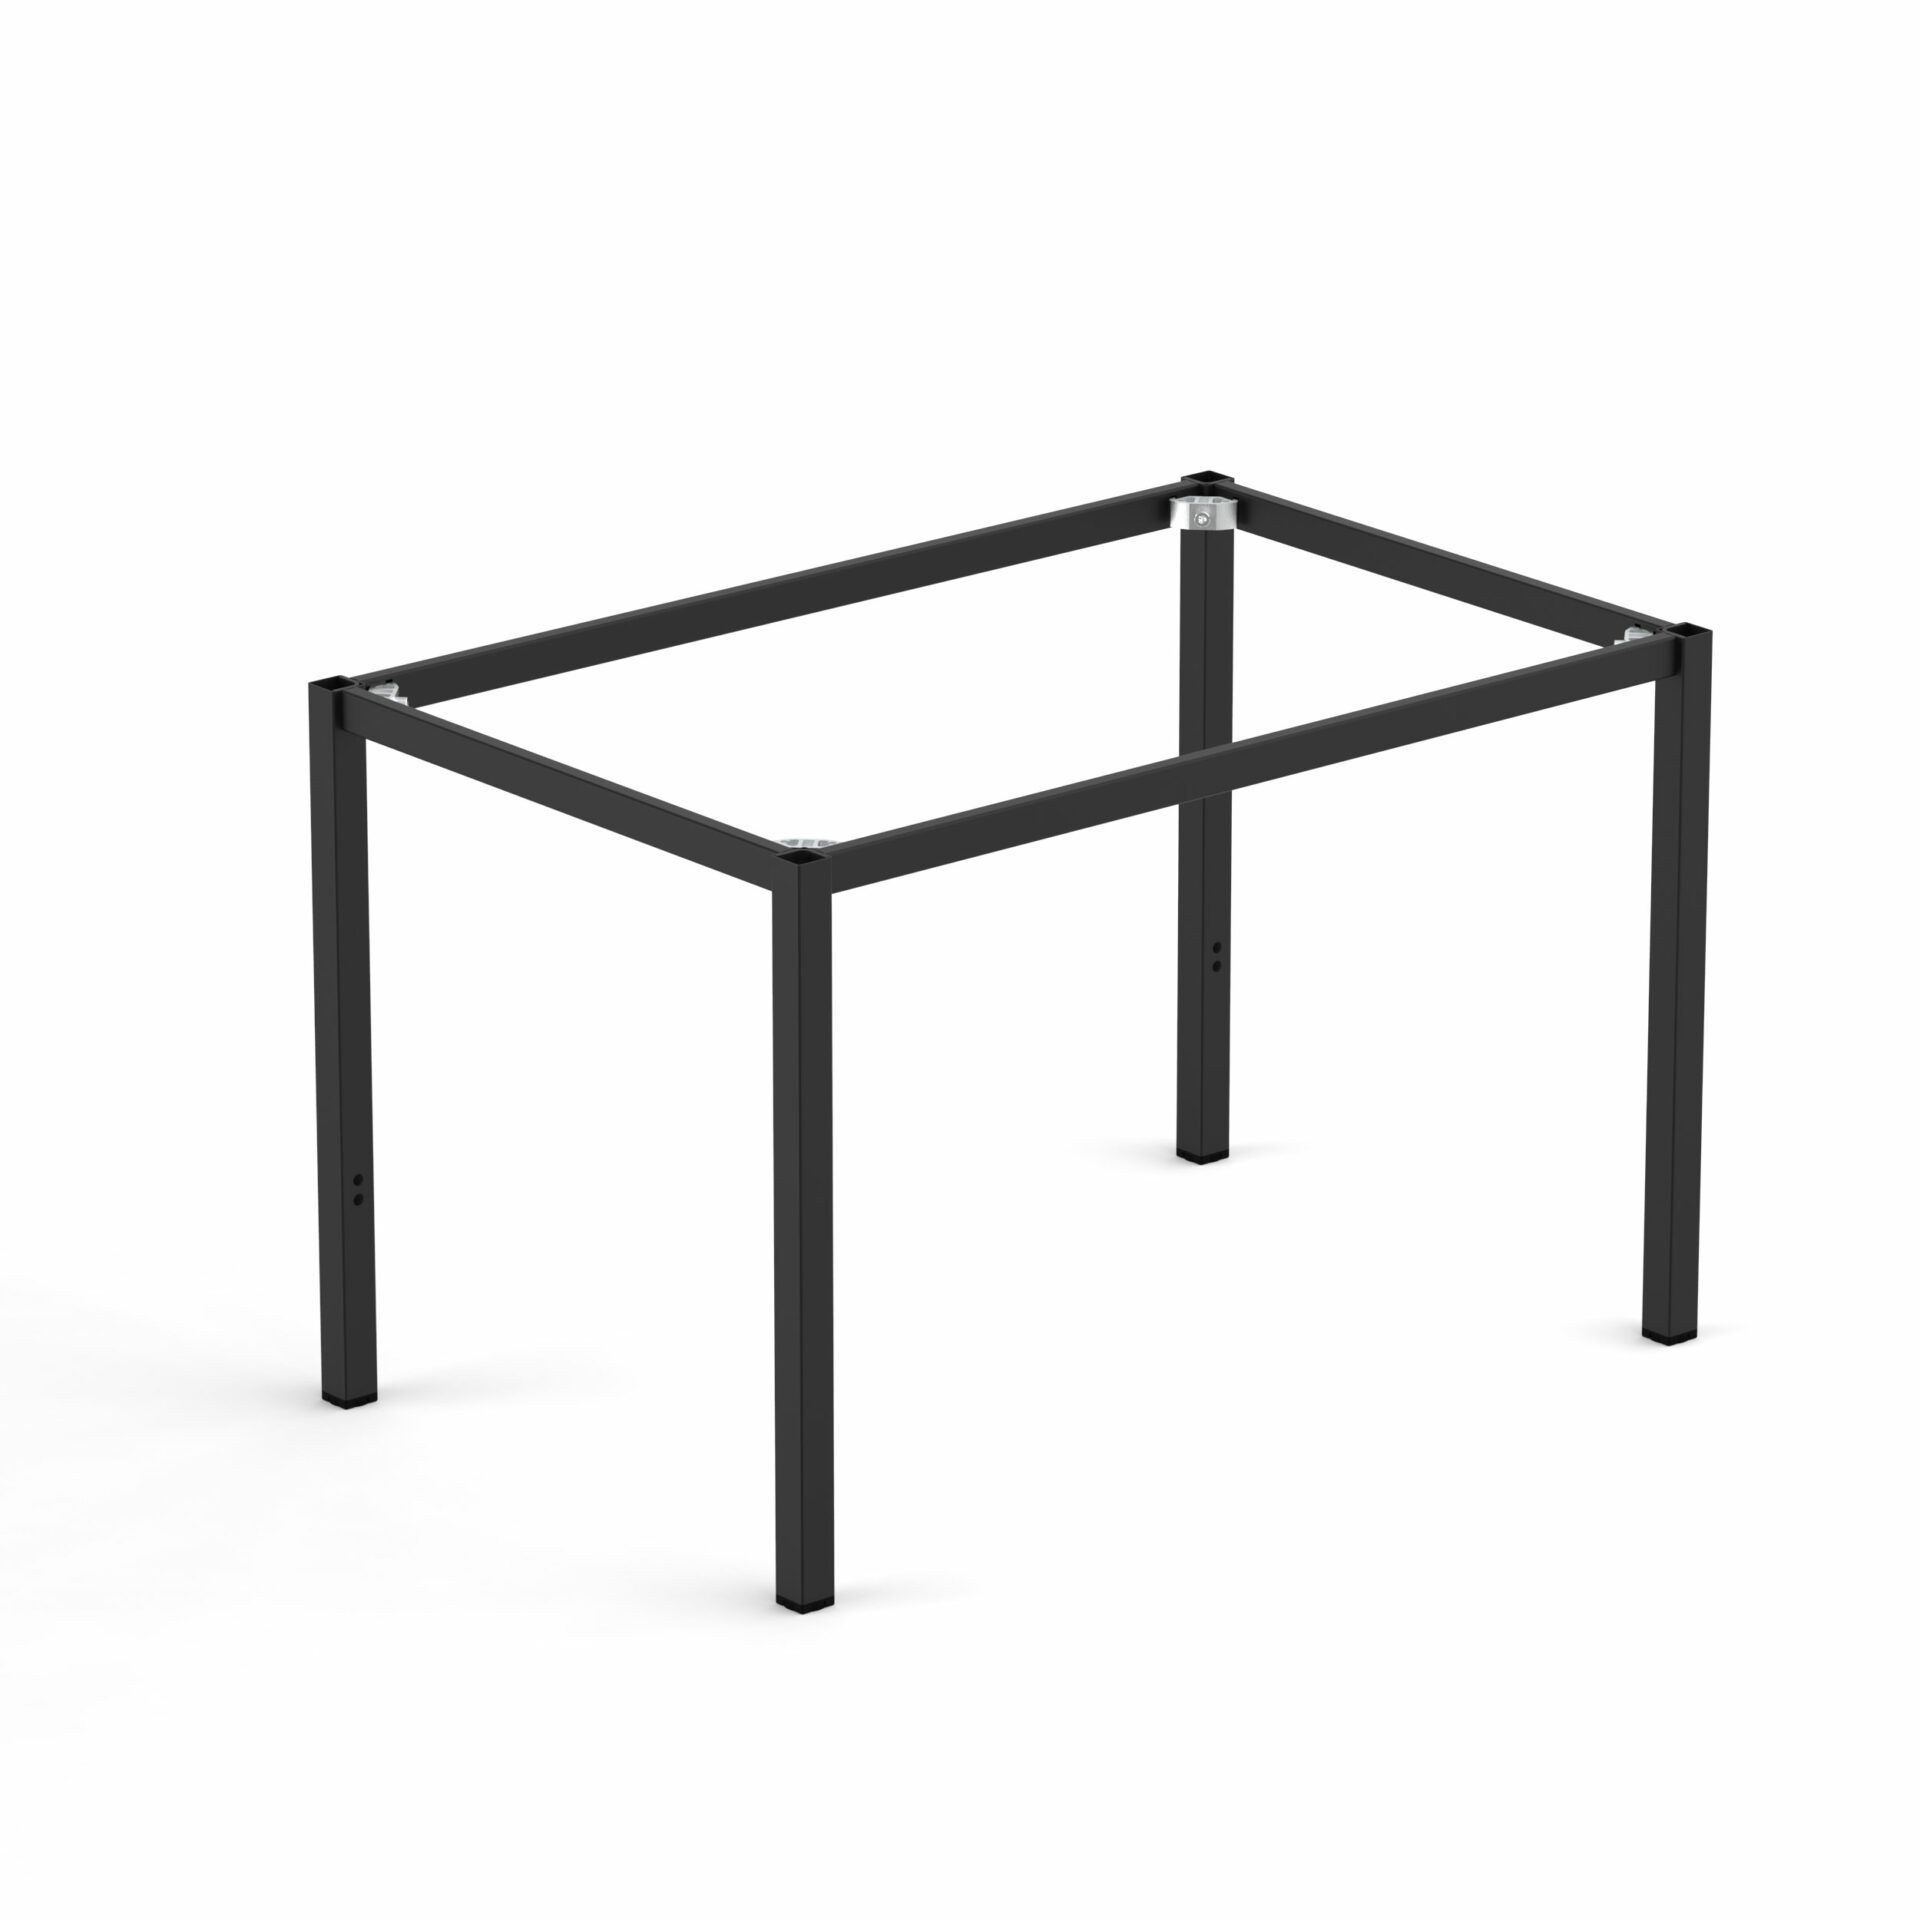 Spire Square leg Table Height Frame 1340 x 990 x 720H